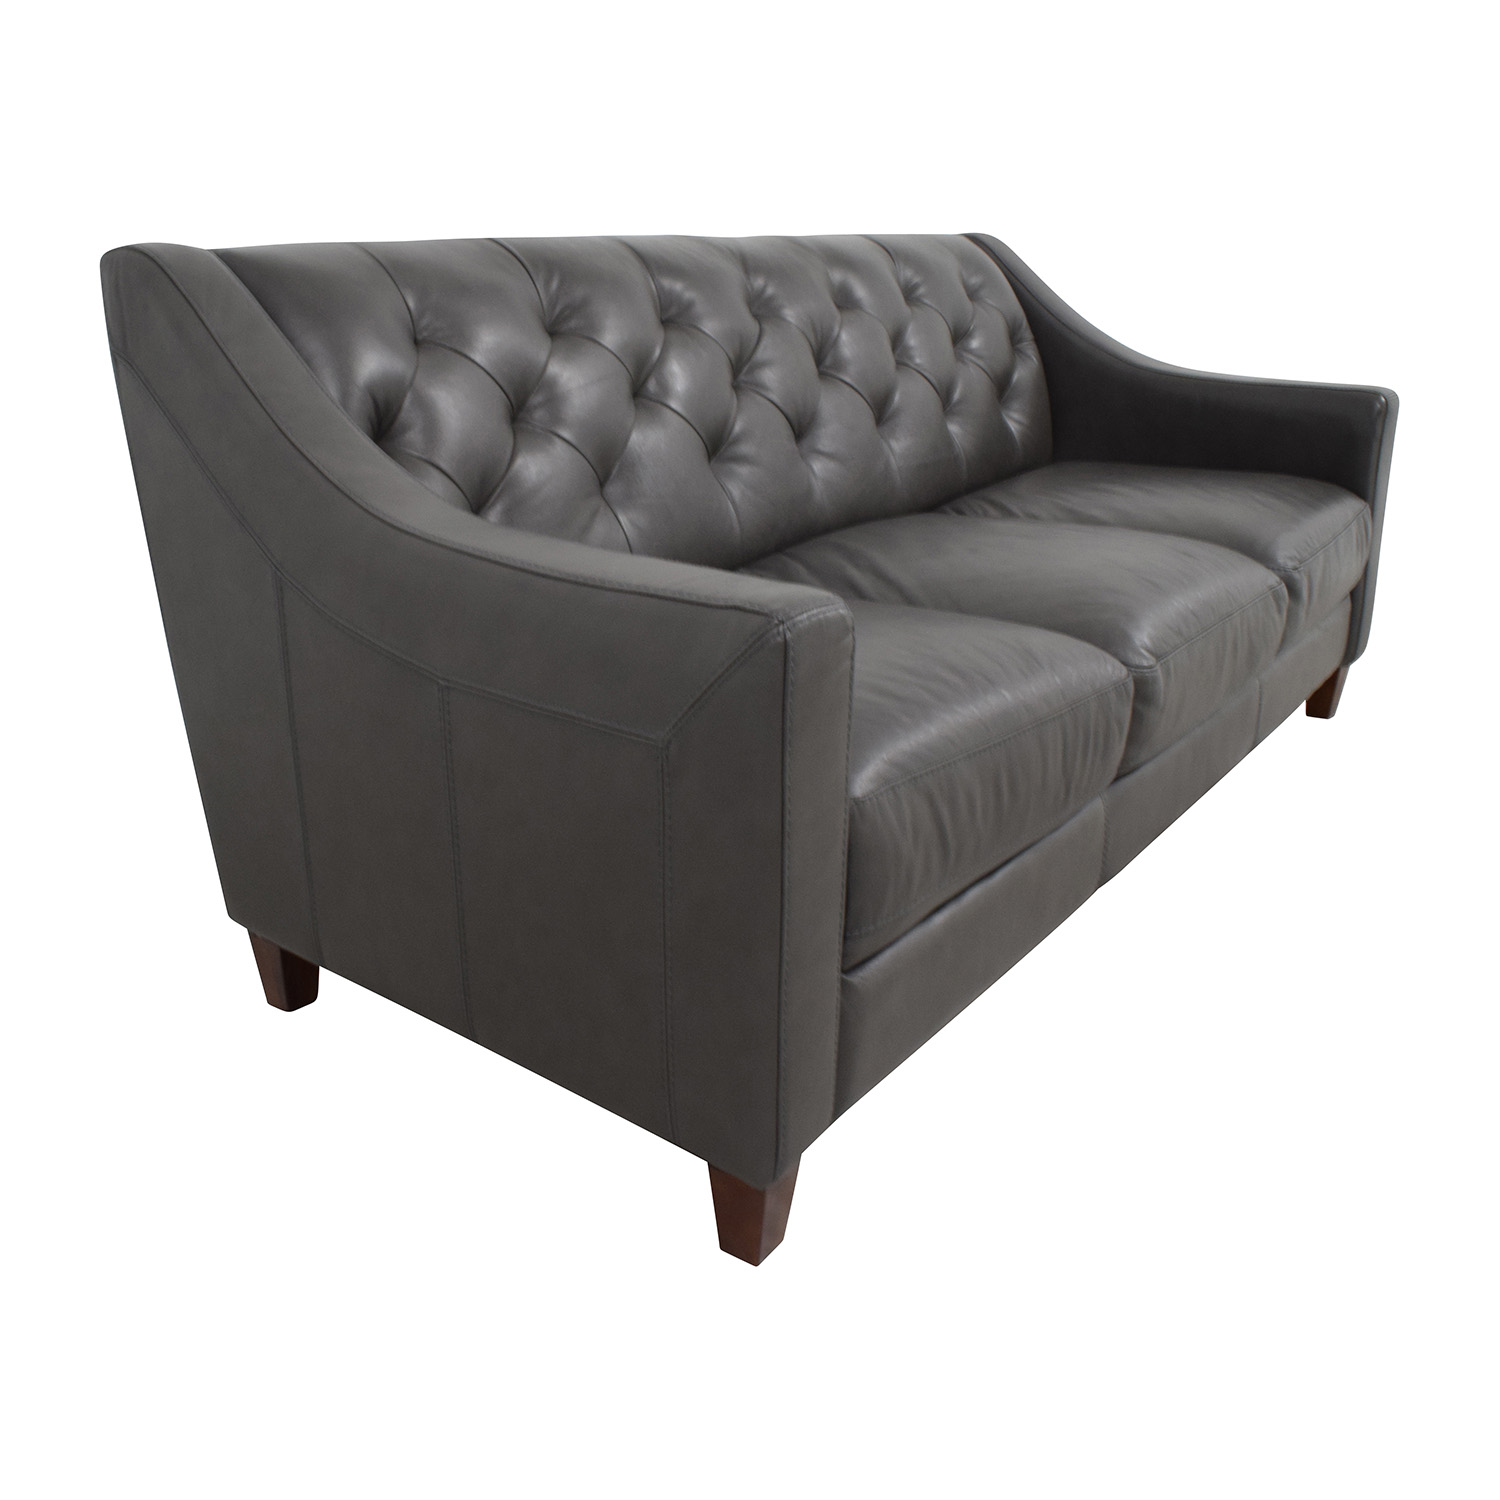 69 Off Macy S Macy S Tufted Gray Leather Sofa Sofas